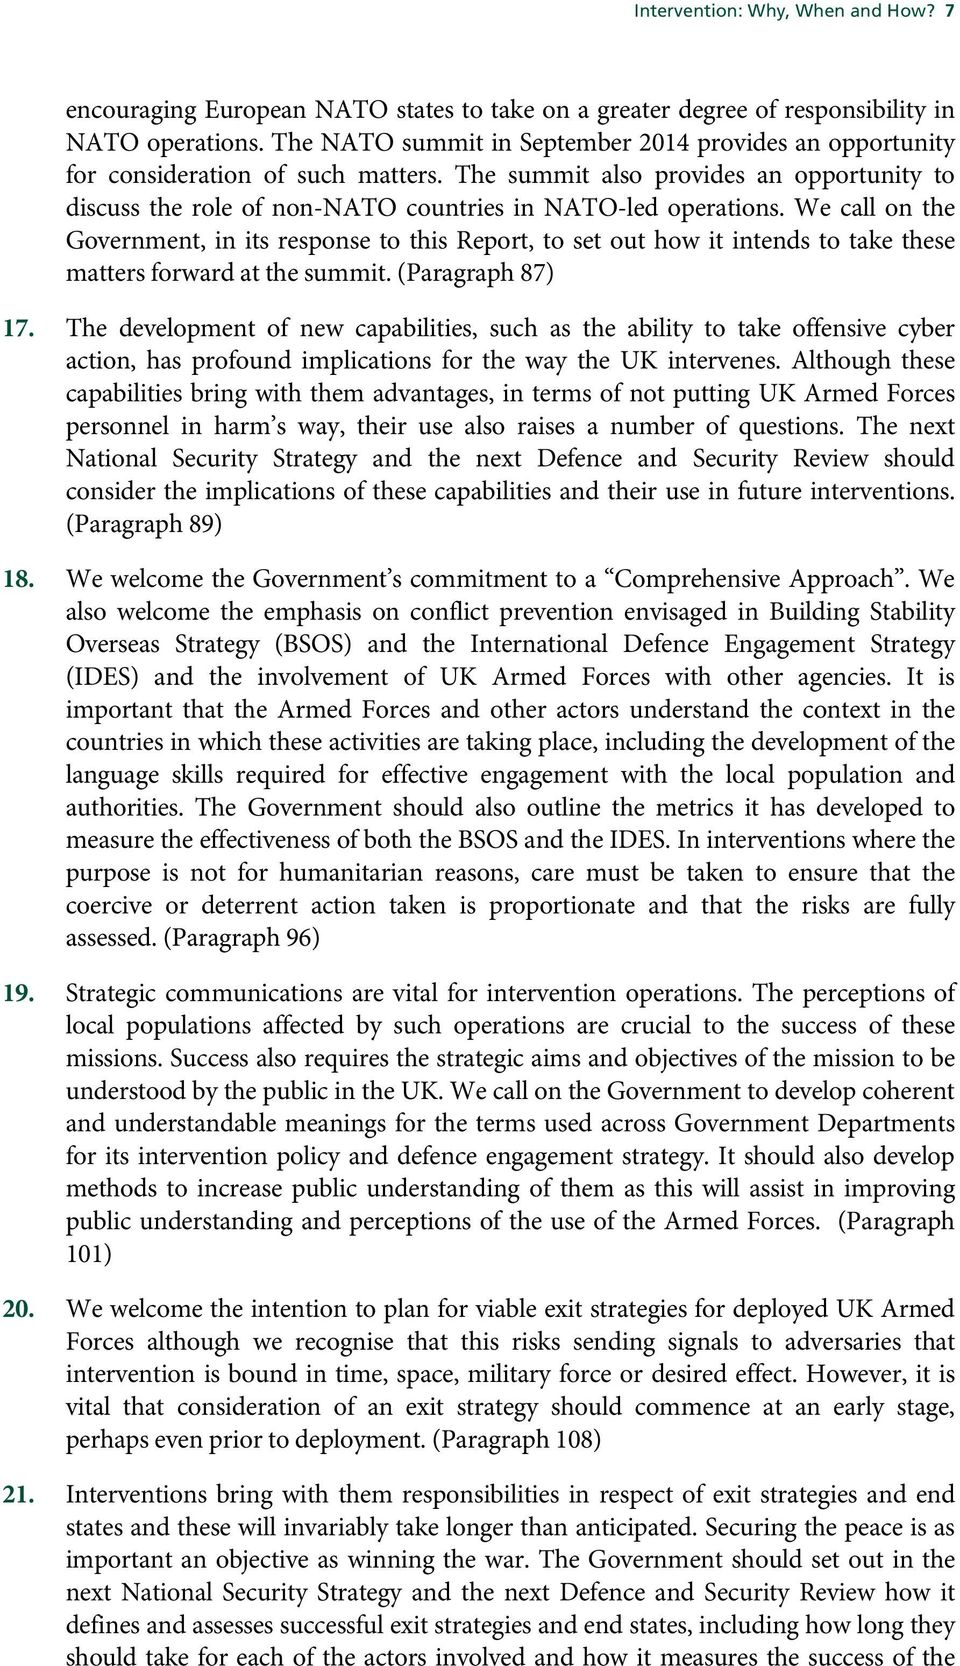 We call on the Government, in its response to this Report, to set out how it intends to take these matters forward at the summit. (Paragraph 87) 17.